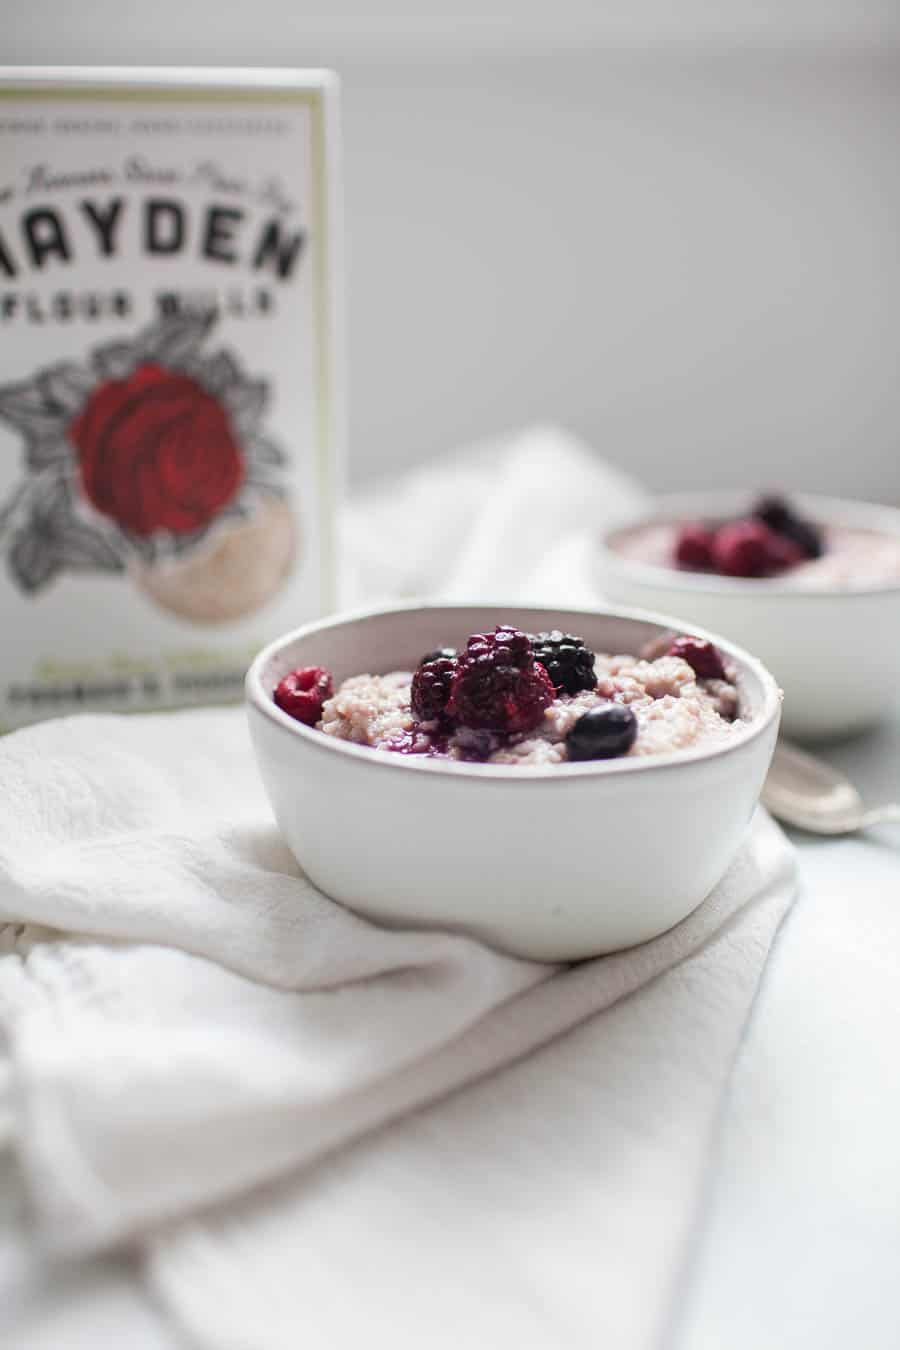 Quick breakfasts are a must! This triple berry stovetop porridge is the perfect breakfast to make in the morning or prep ahead for the week! Your whole family will enjoy this hot breakfast that is refined sugar free, dairy free, yet creamy and delicious. Made with Hayden Mills Farmer's Porridge, almond milk, frozen mixed berries and a splash of pure maple syrup, this stovetop porridge will start your day off right!